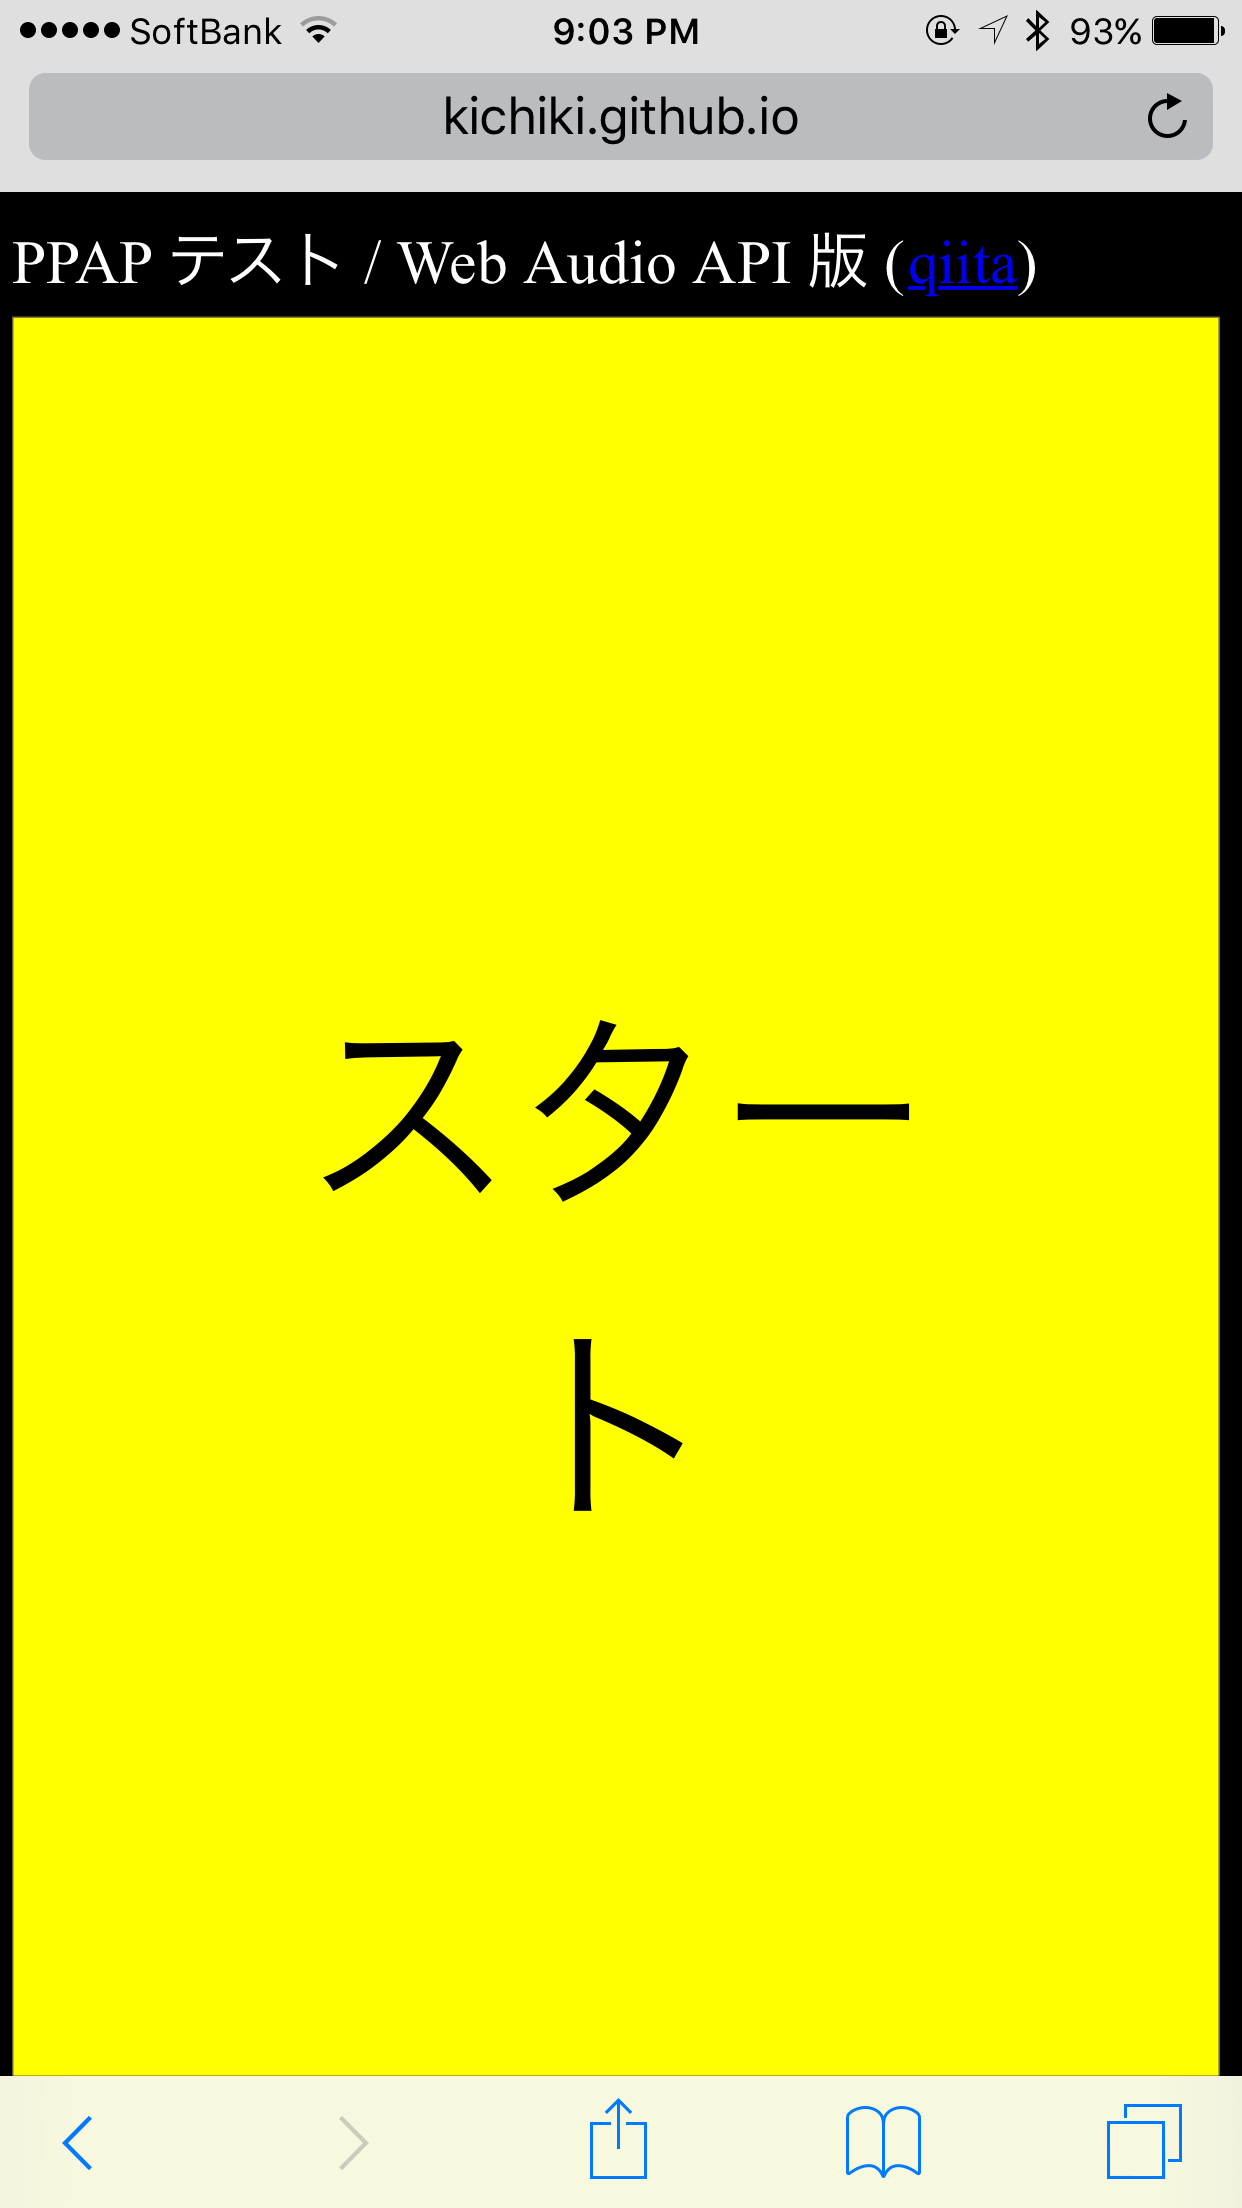 IMG_6670.PNG